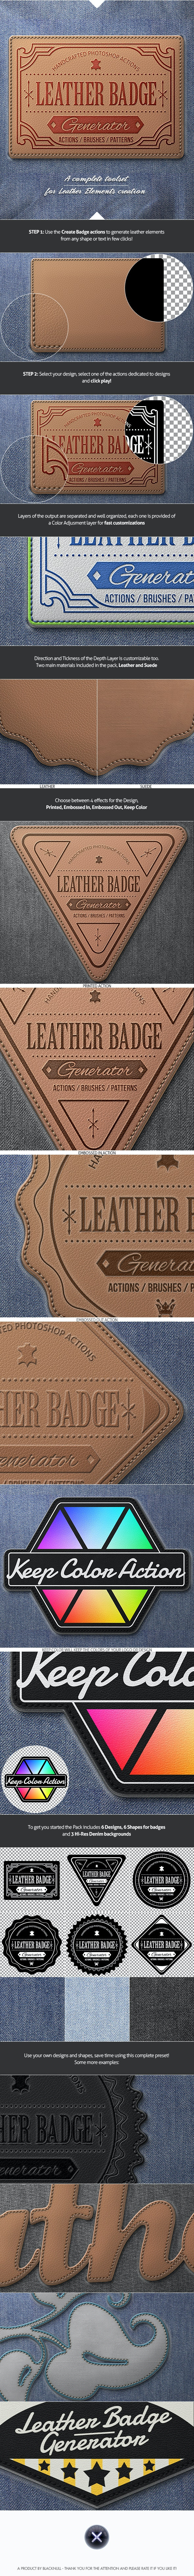 Leather Badge Generator - Photoshop Actions - Actions Photoshop